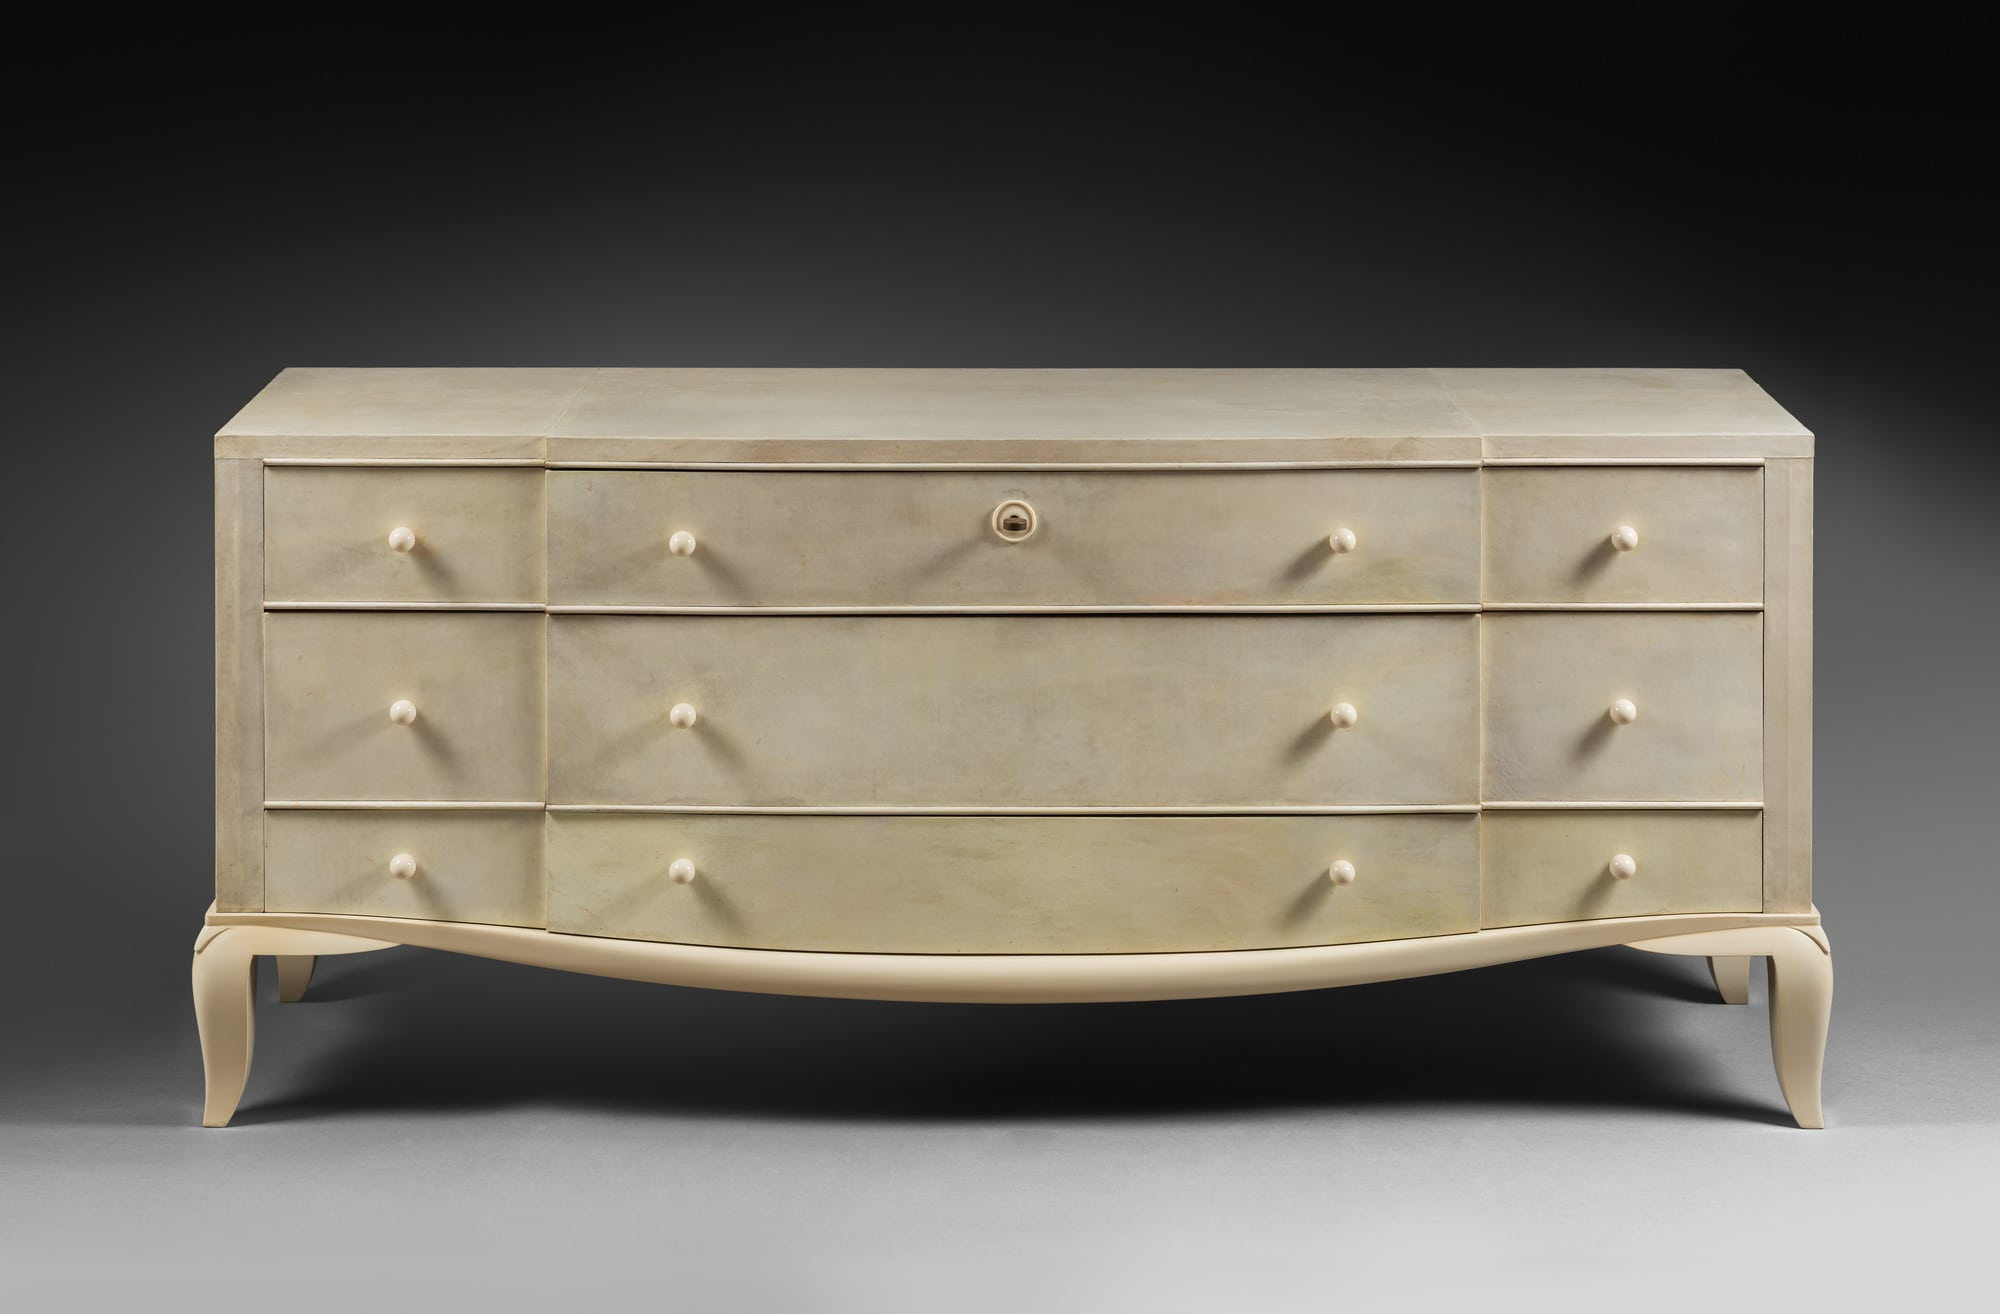 Rare 'pantalonniere' chest of drawers, vue 01